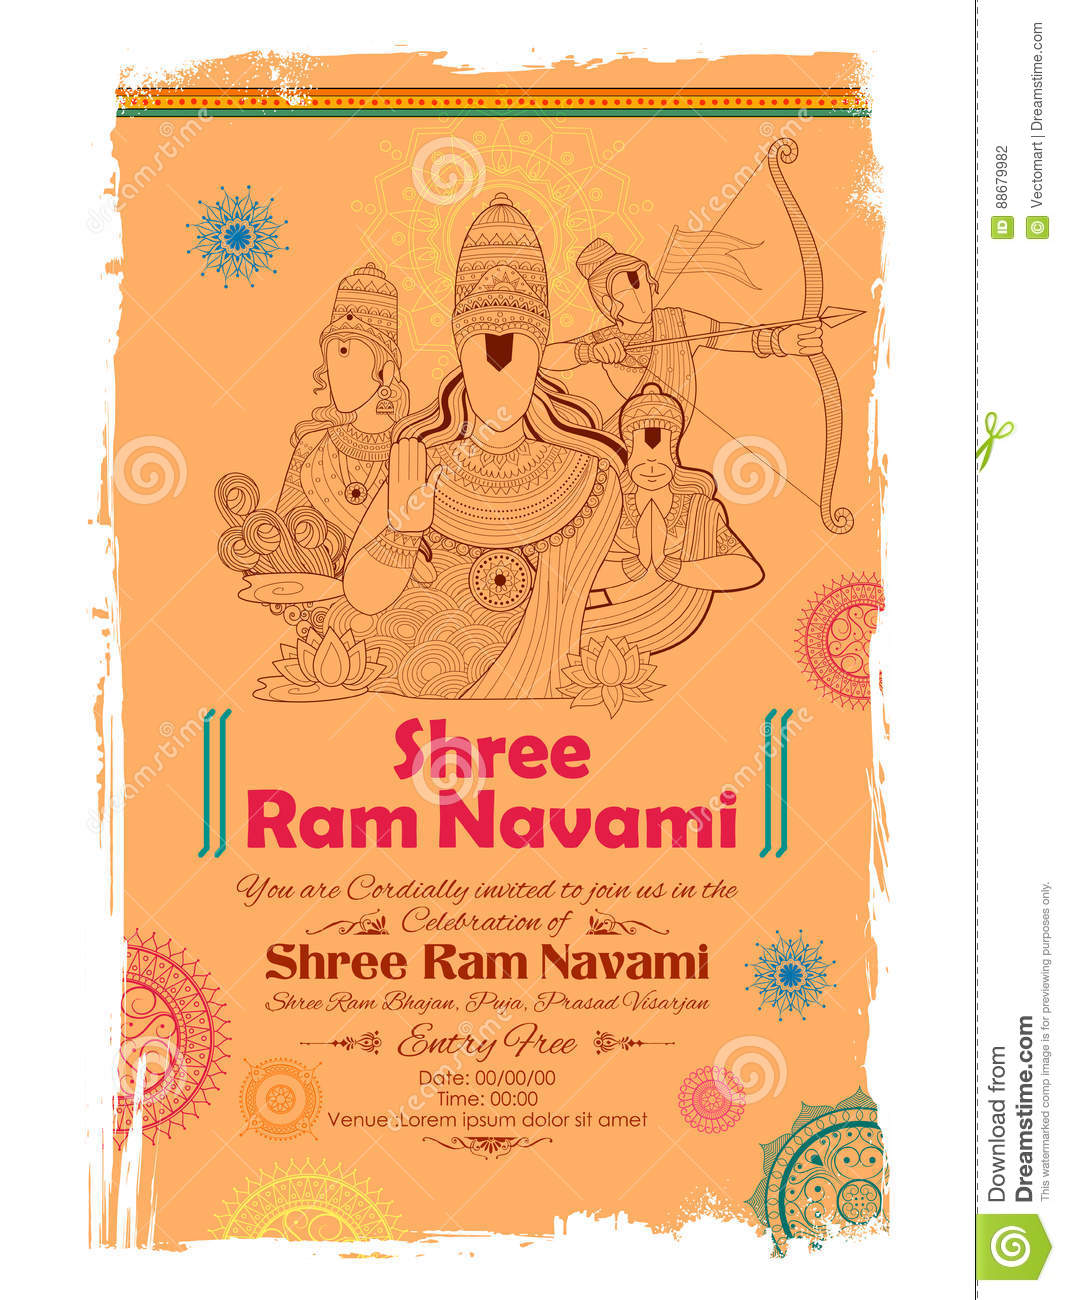 Image Result For Sita Ram Meaning